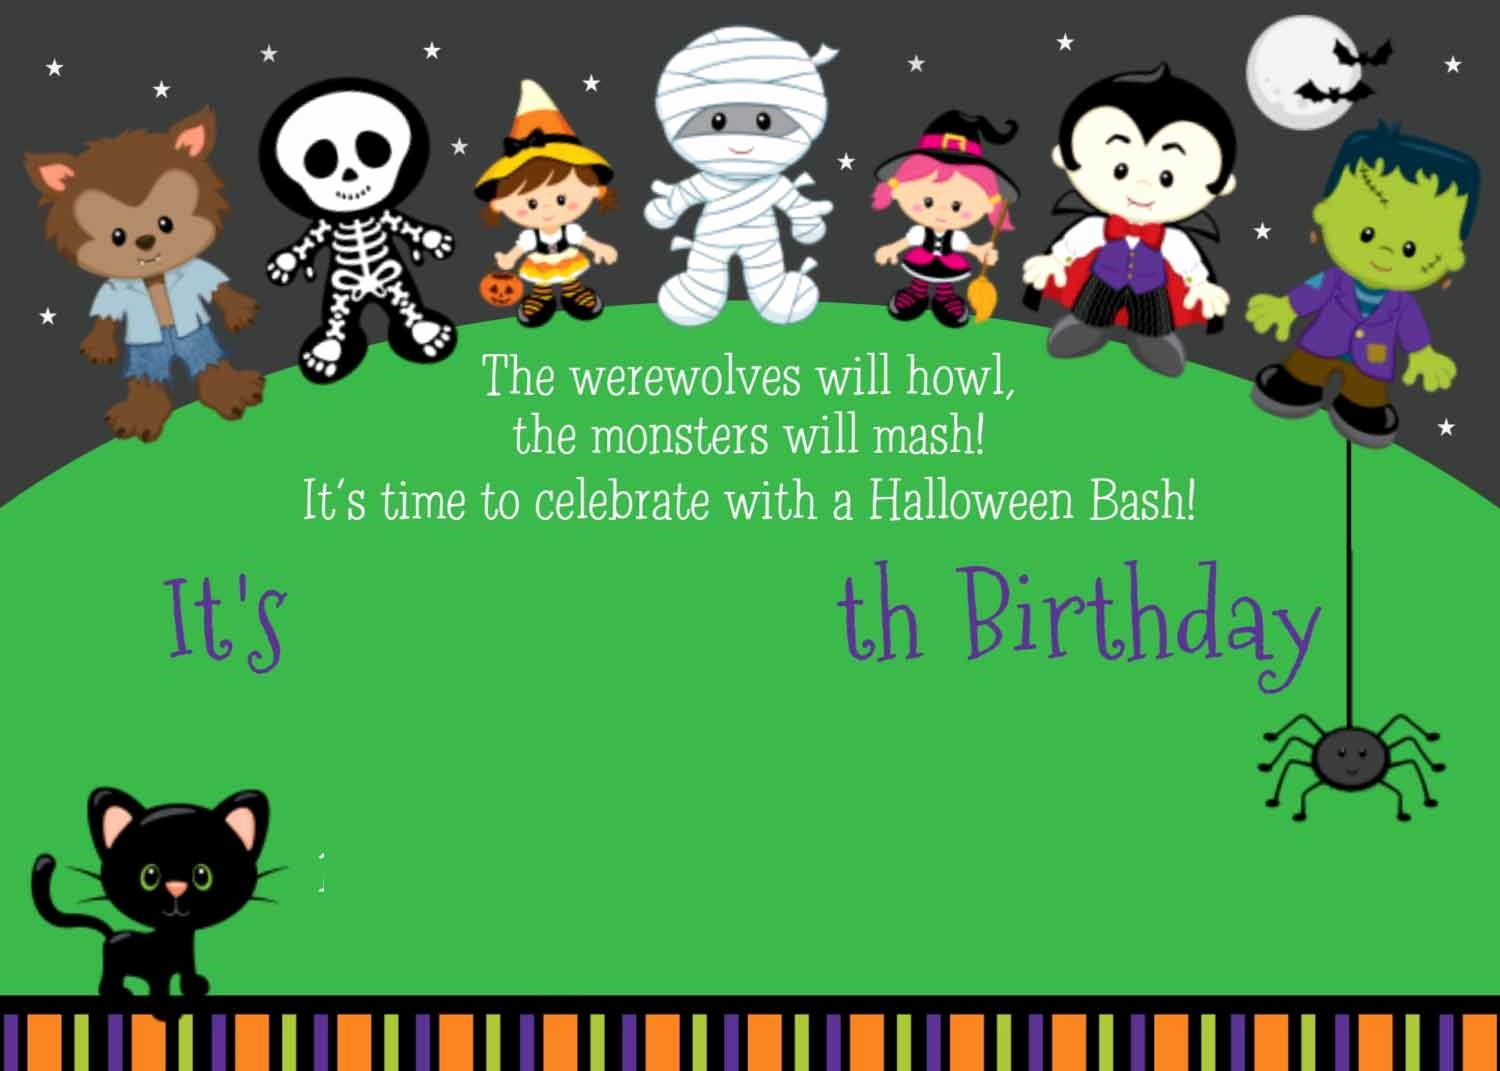 Halloween Birthday Party Invitations Unique Free Printable About Halloween Birthday Party Invitations